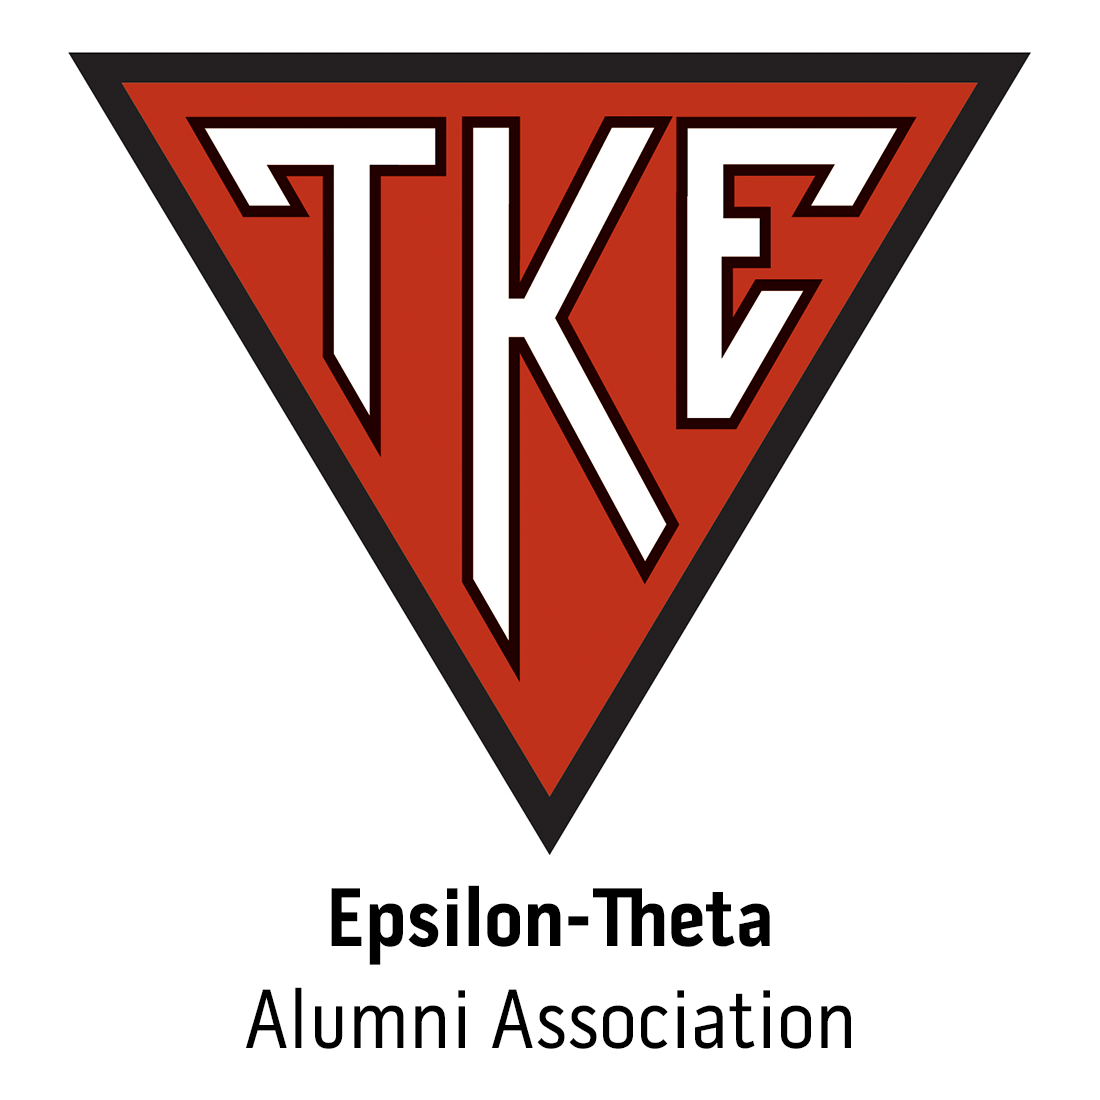 Epsilon-Theta Alumni Association for Southeastern Oklahoma State University